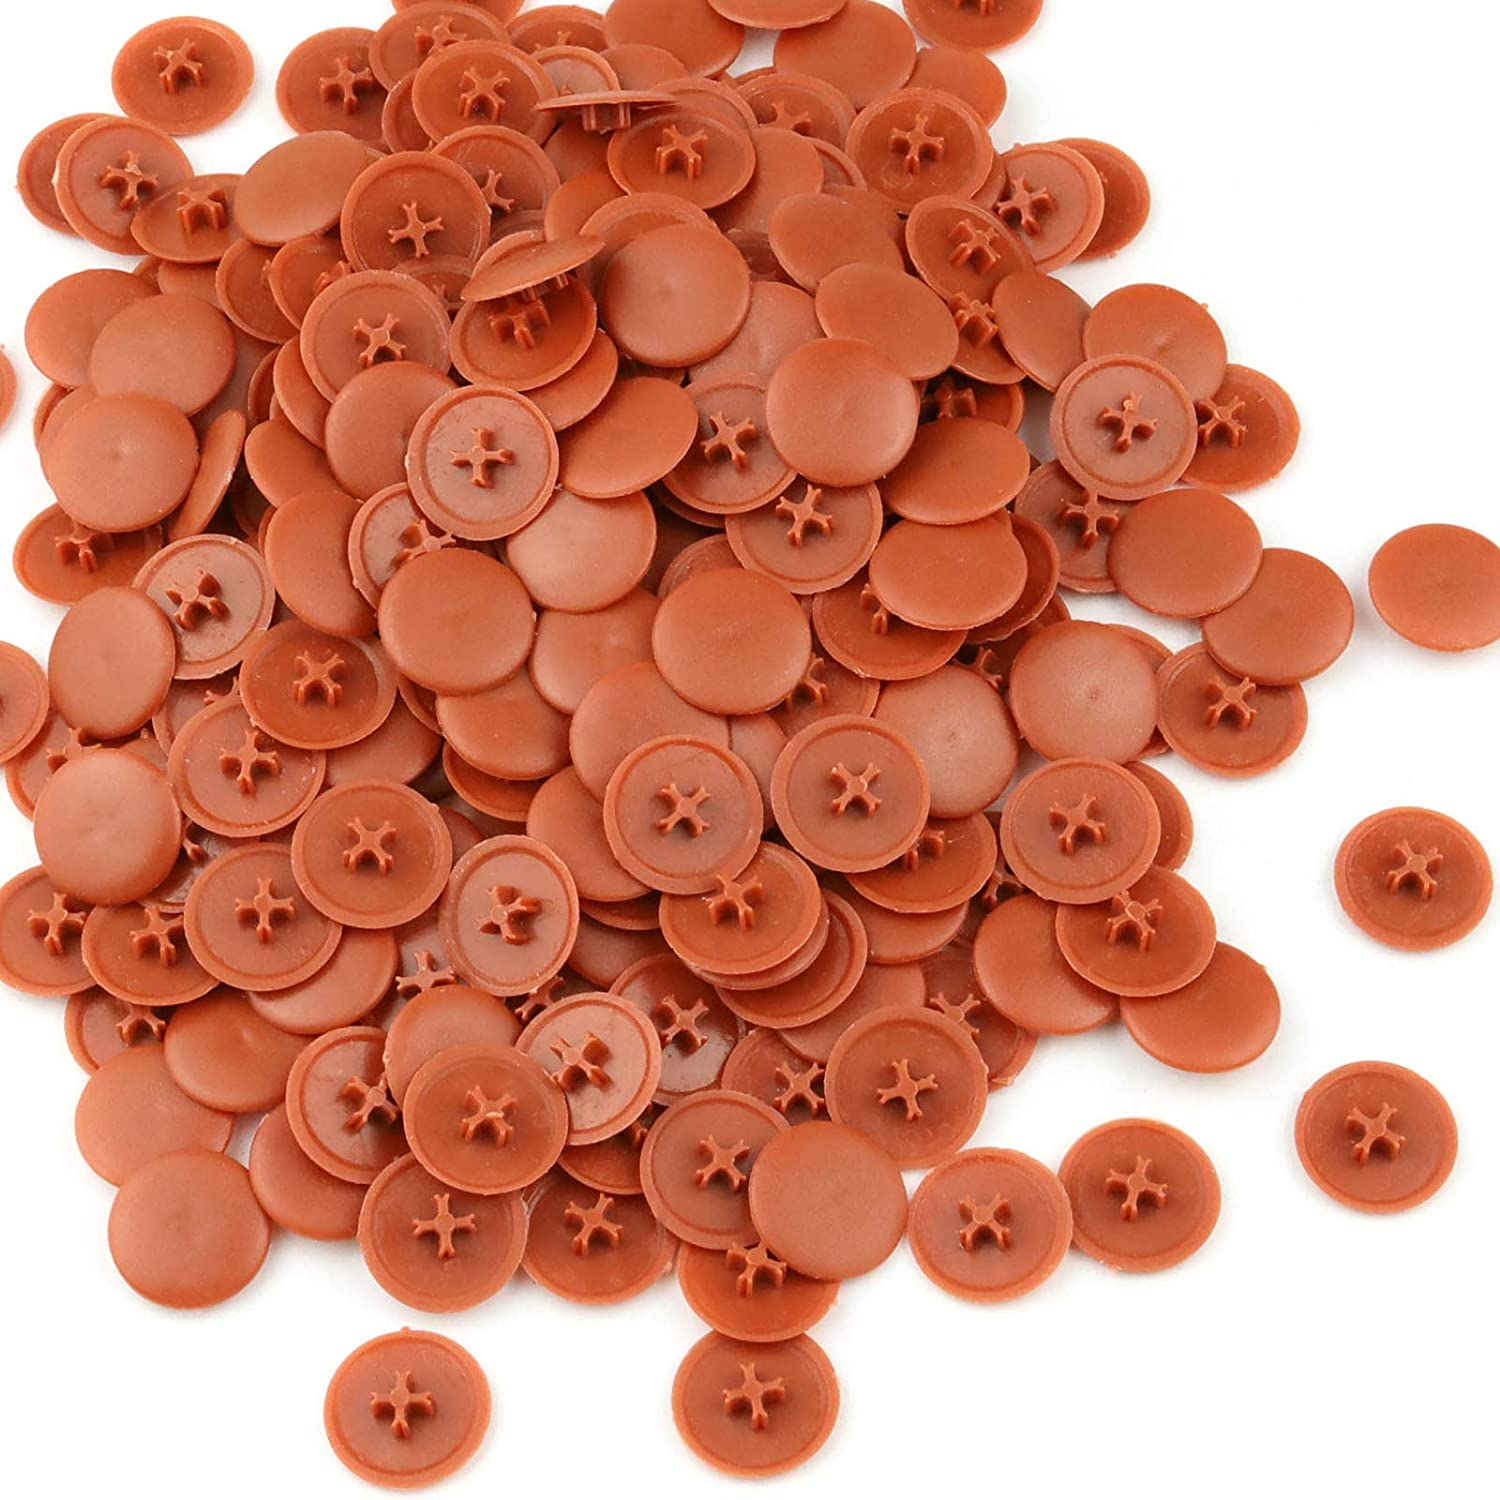 1000 Pcs 16.8mm Plastic Screw Cap Covers Self-Tapping Plastic for Phillips Screw (Light Brown)